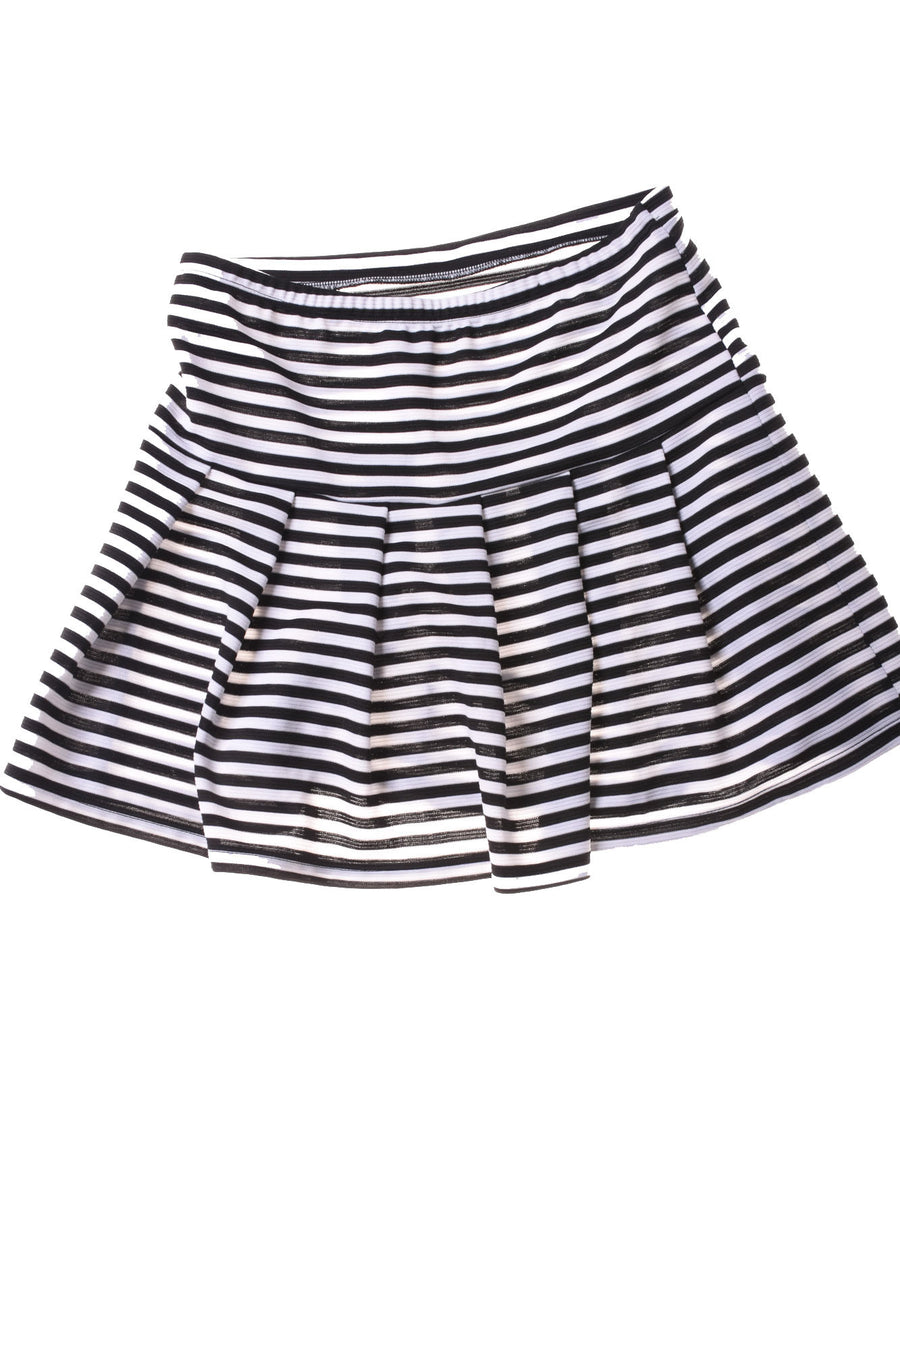 USED Lily White Girl's Skirt Small Black & White